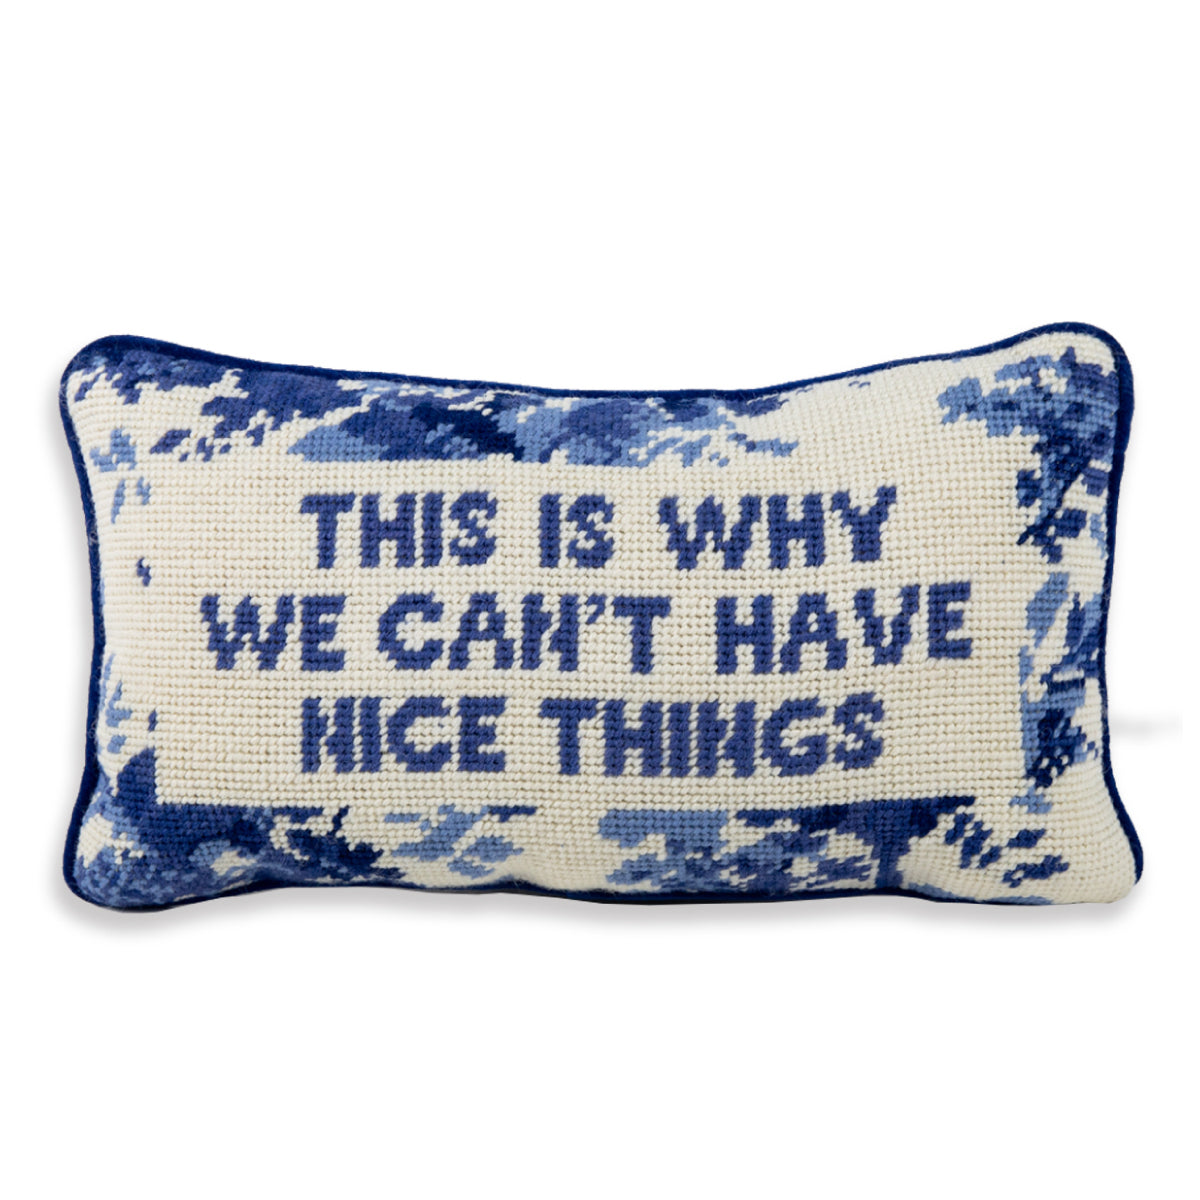 Furbish Studio Exclusive - This is Why We Can't Have Nice Things Needlepoint Pillow